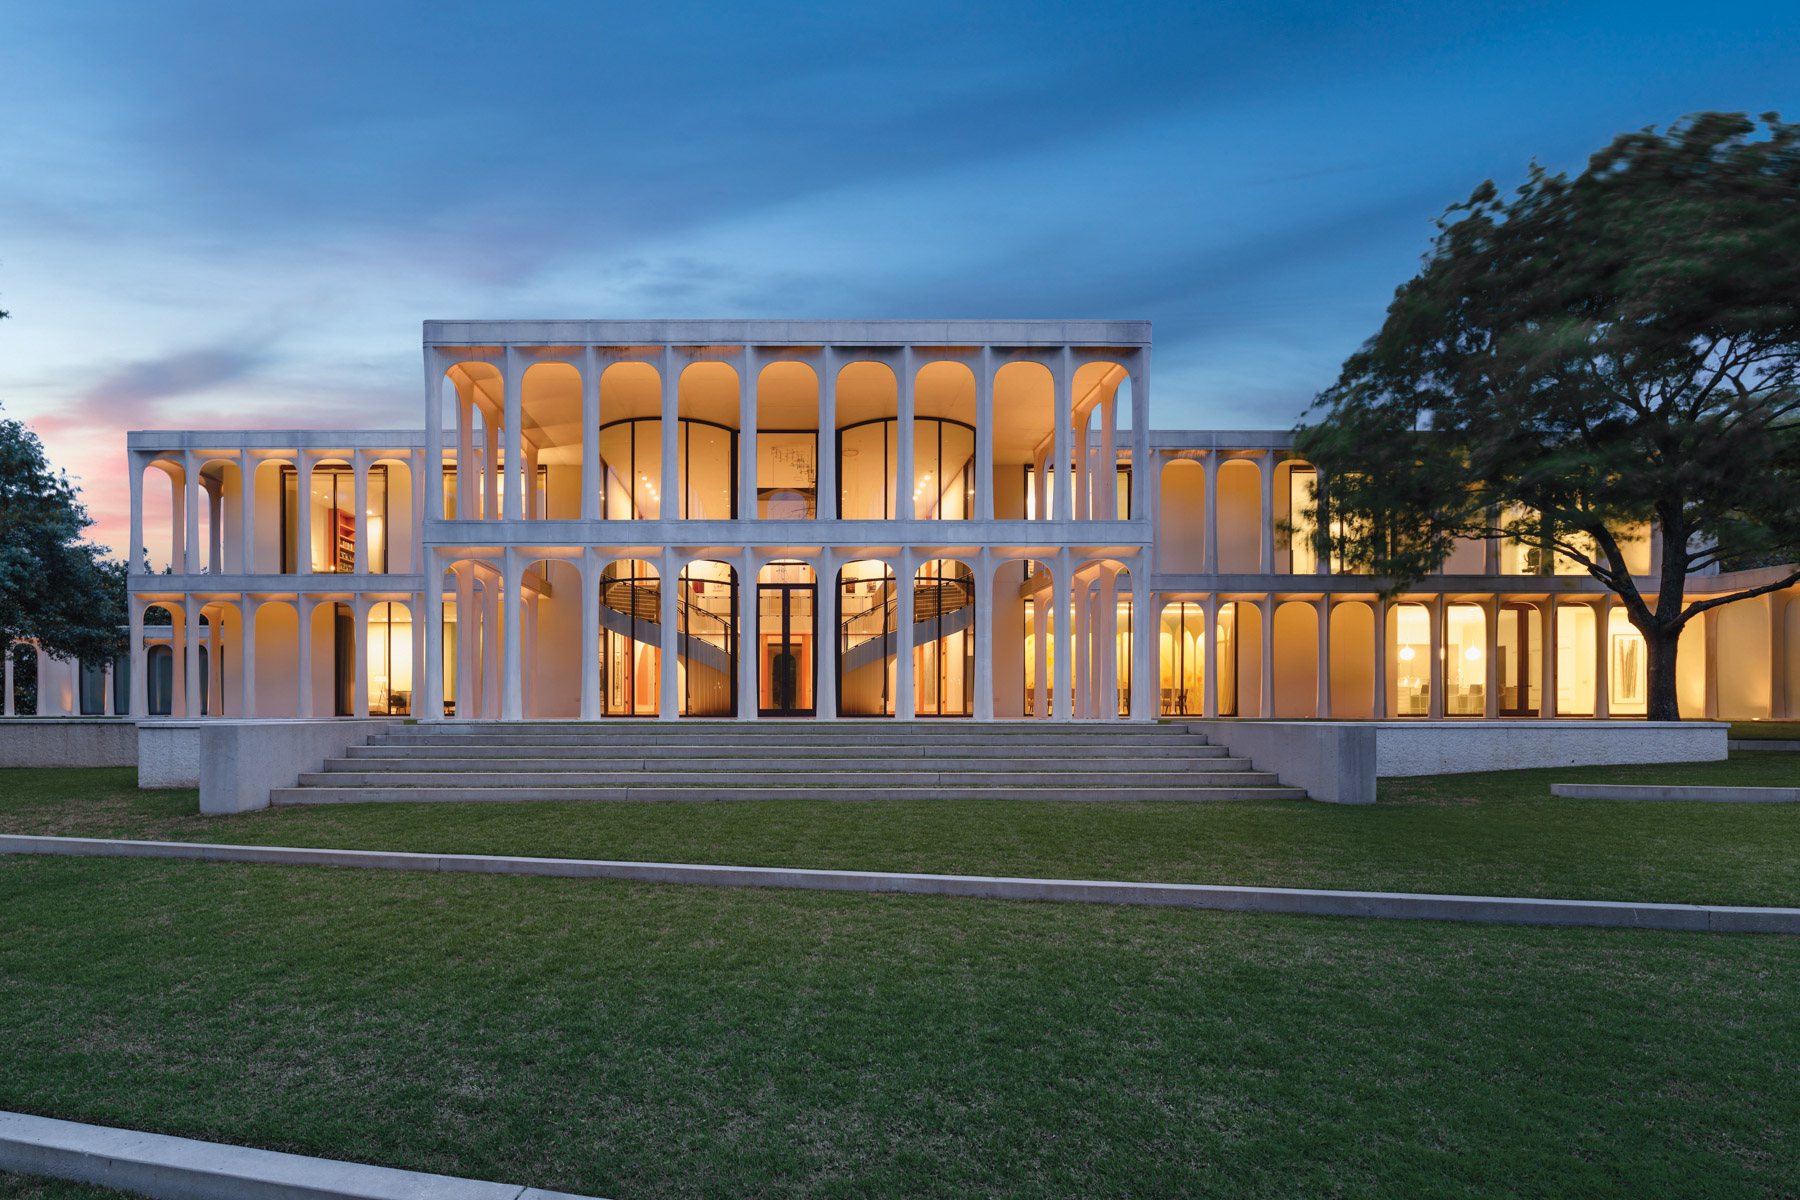 Casa Unifamiliar por un Venta en Philip Johnson Masterpiece 10210 Strait Lane Dallas, Texas 75229 Estados Unidos